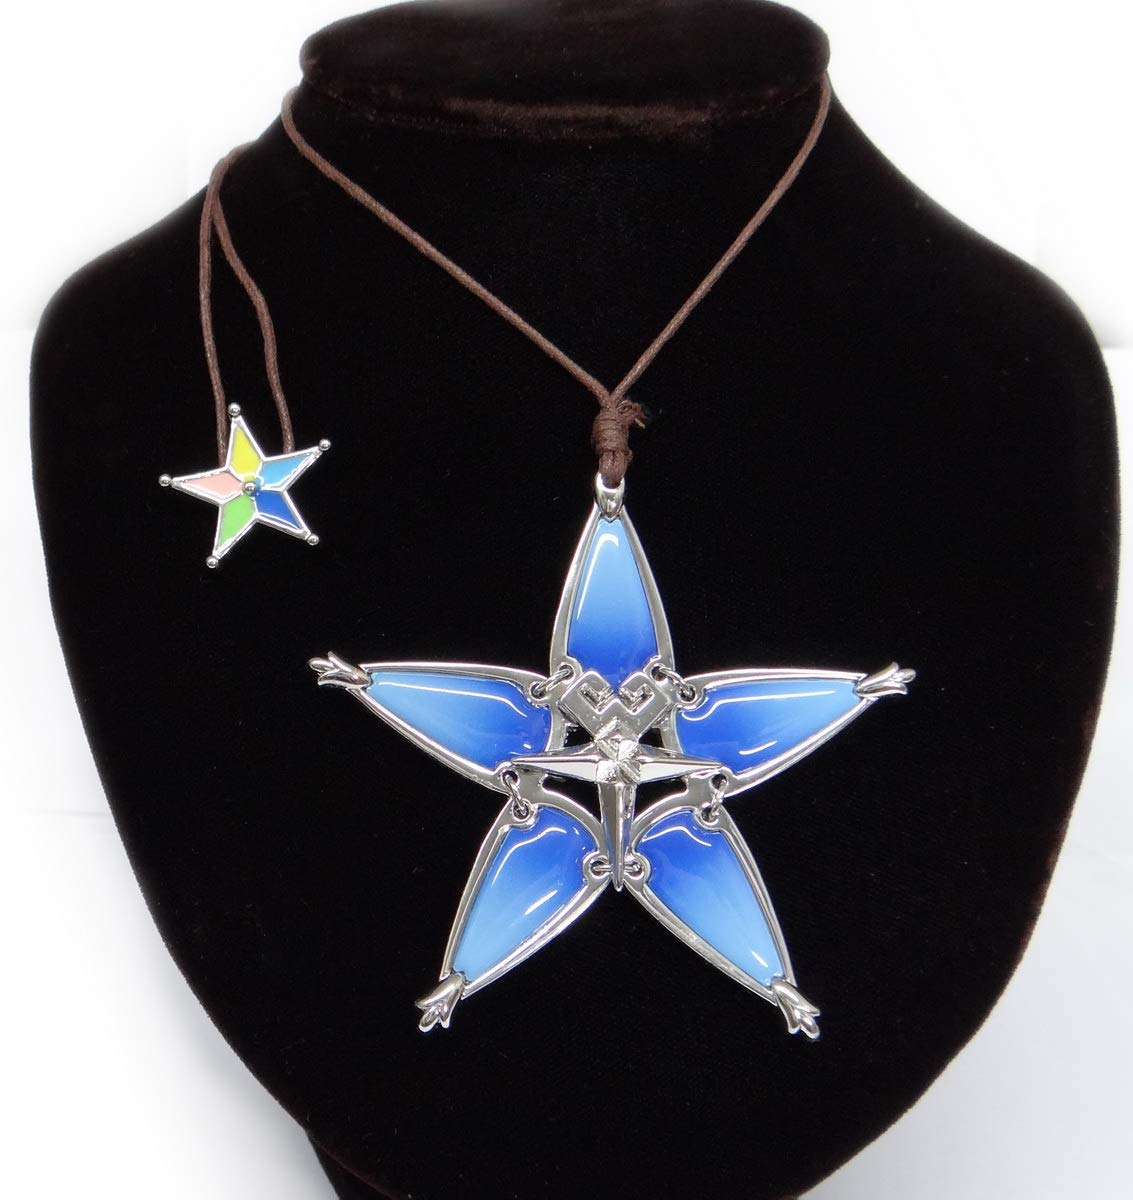 Decalism Aqua's Wayfinder from Kingdom Hearts Made of Metal by Decalism (Image #3)